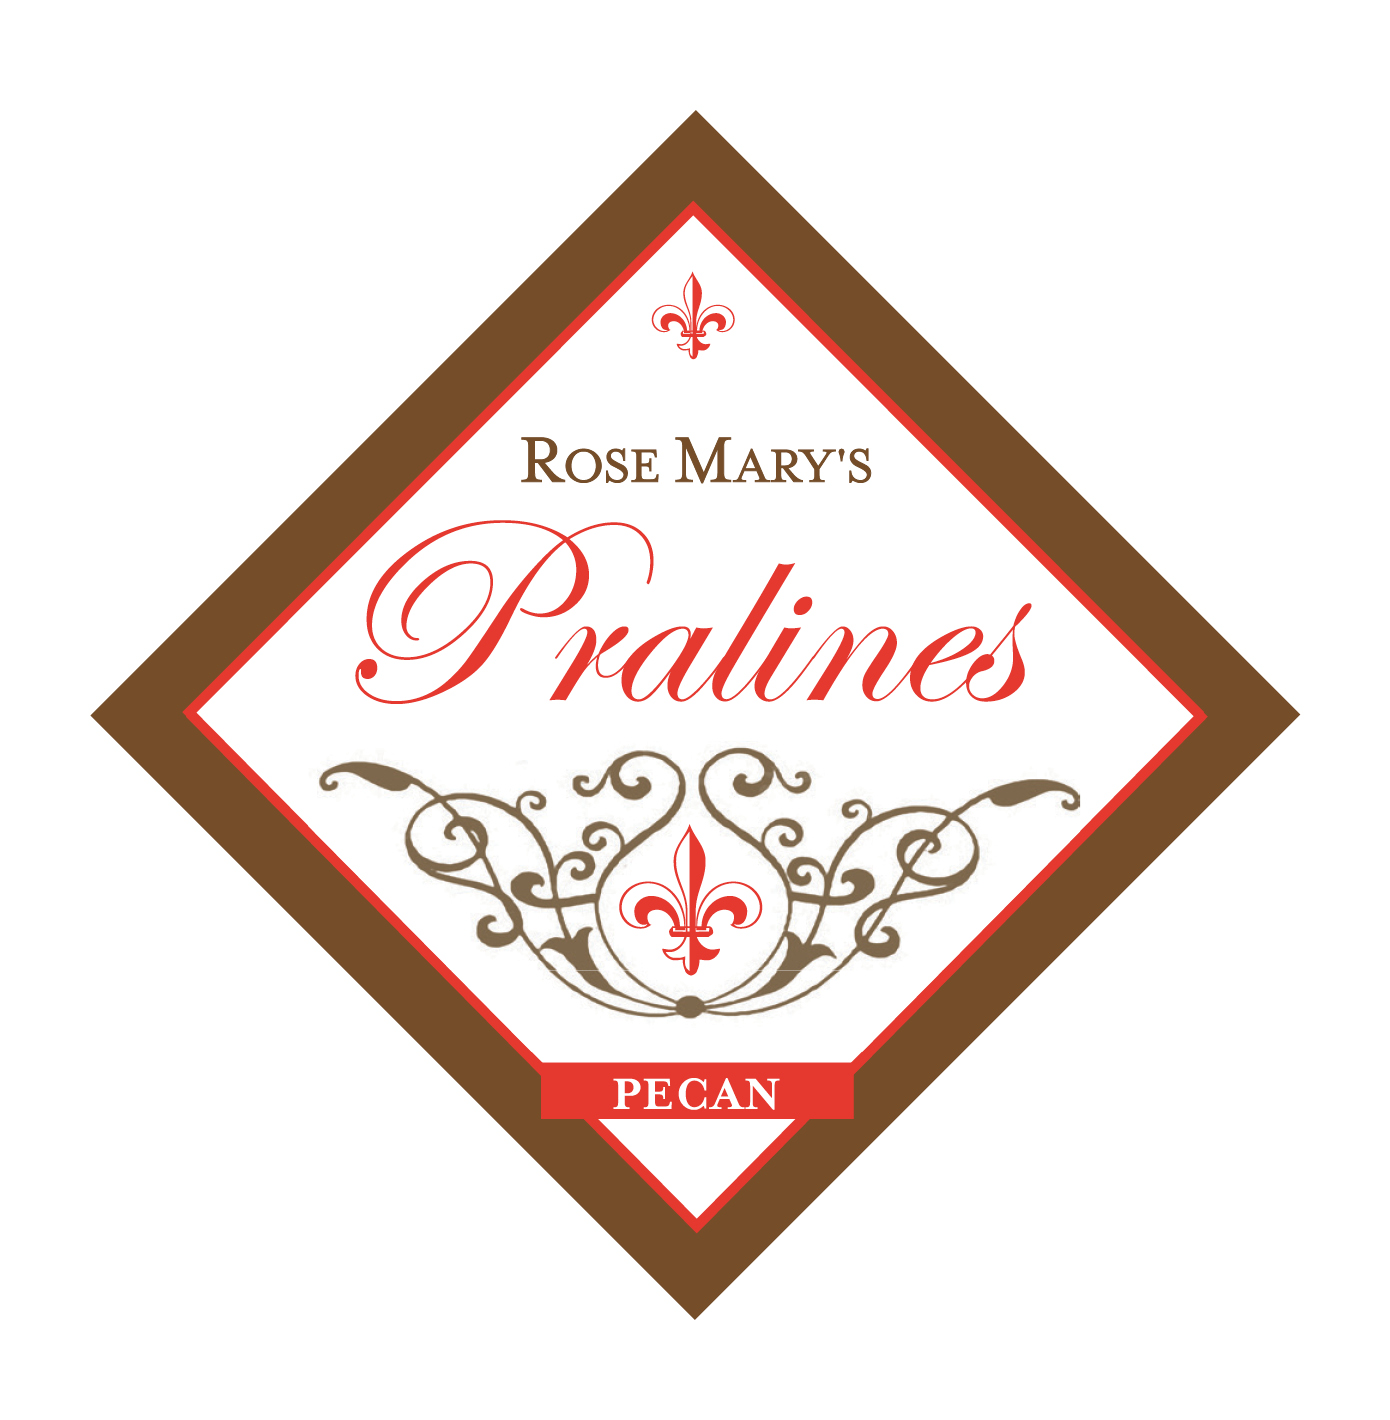 Rose Mary's Pralines